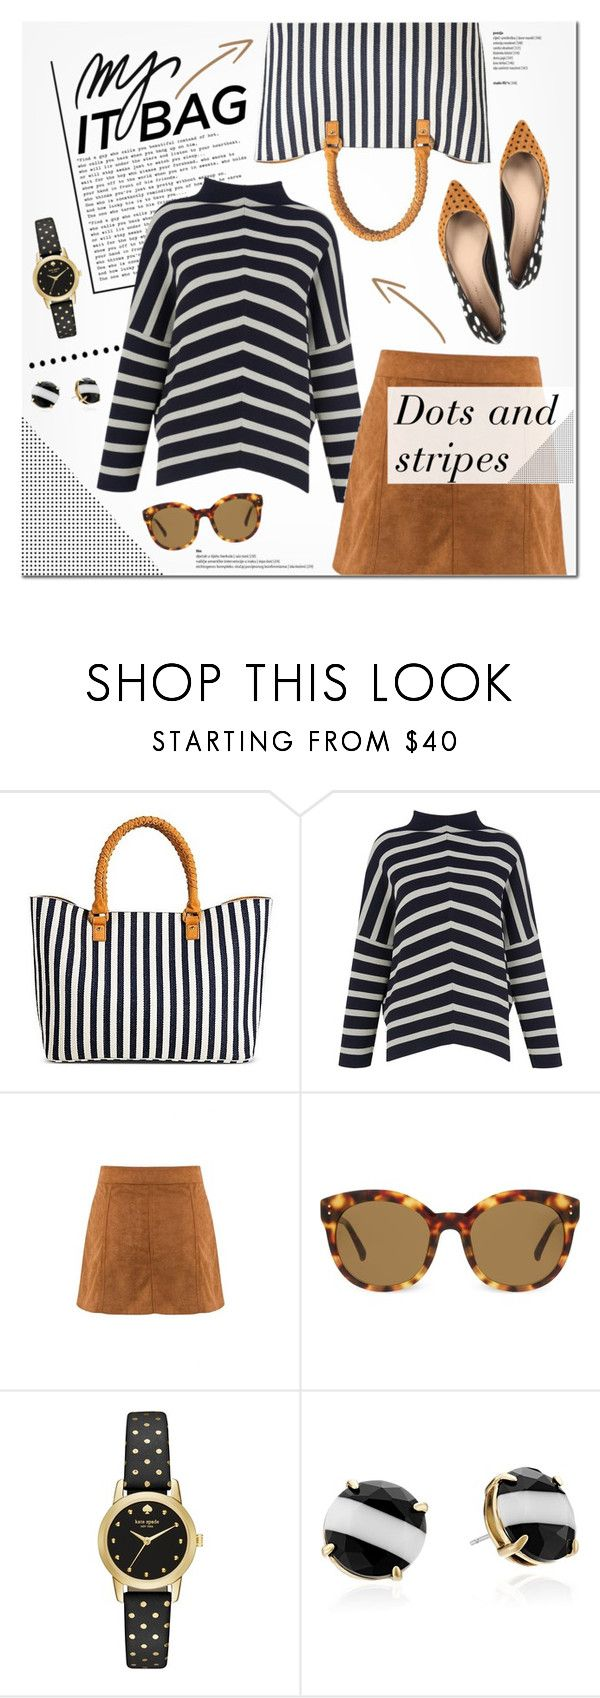 """""""Tote bags: Dots and Stripes"""" by anna-anica ❤ liked on Polyvore featuring Target, Whistles, Lancôme, Linda Farrow, Kate Spade, women's clothing, women's fashion, women, female and woman"""